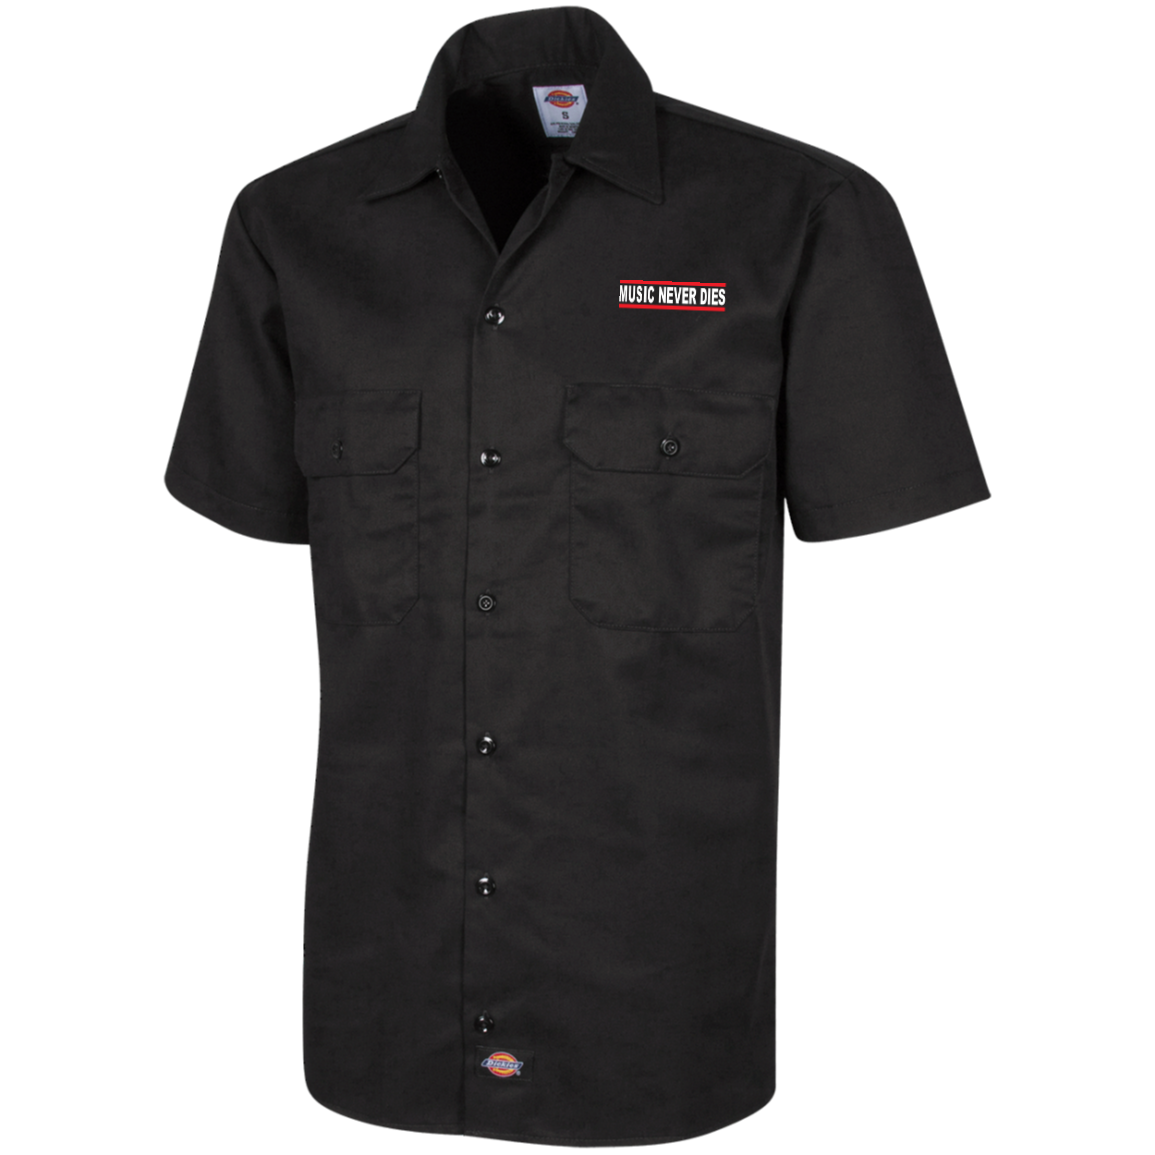 Dickies/Music Never Dies Men's Short Sleeve